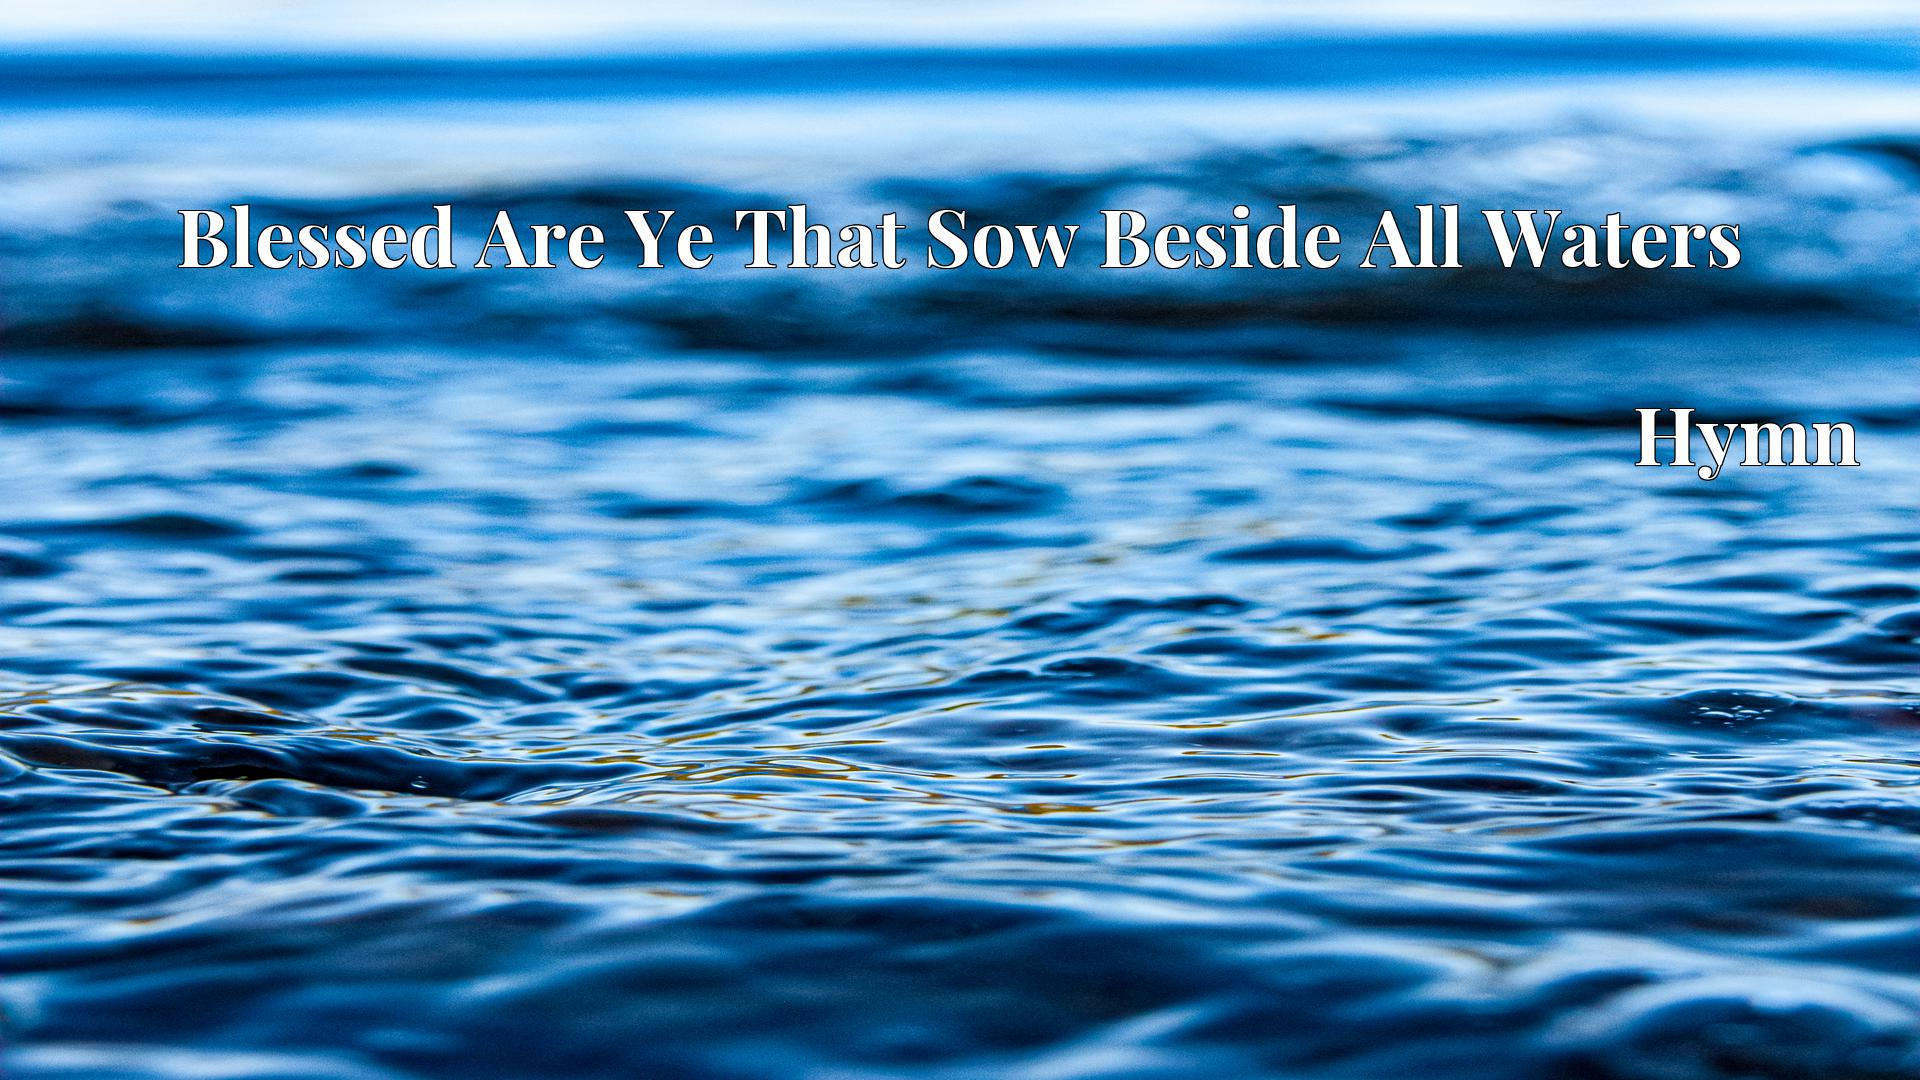 Blessed Are Ye That Sow Beside All Waters - Hymn